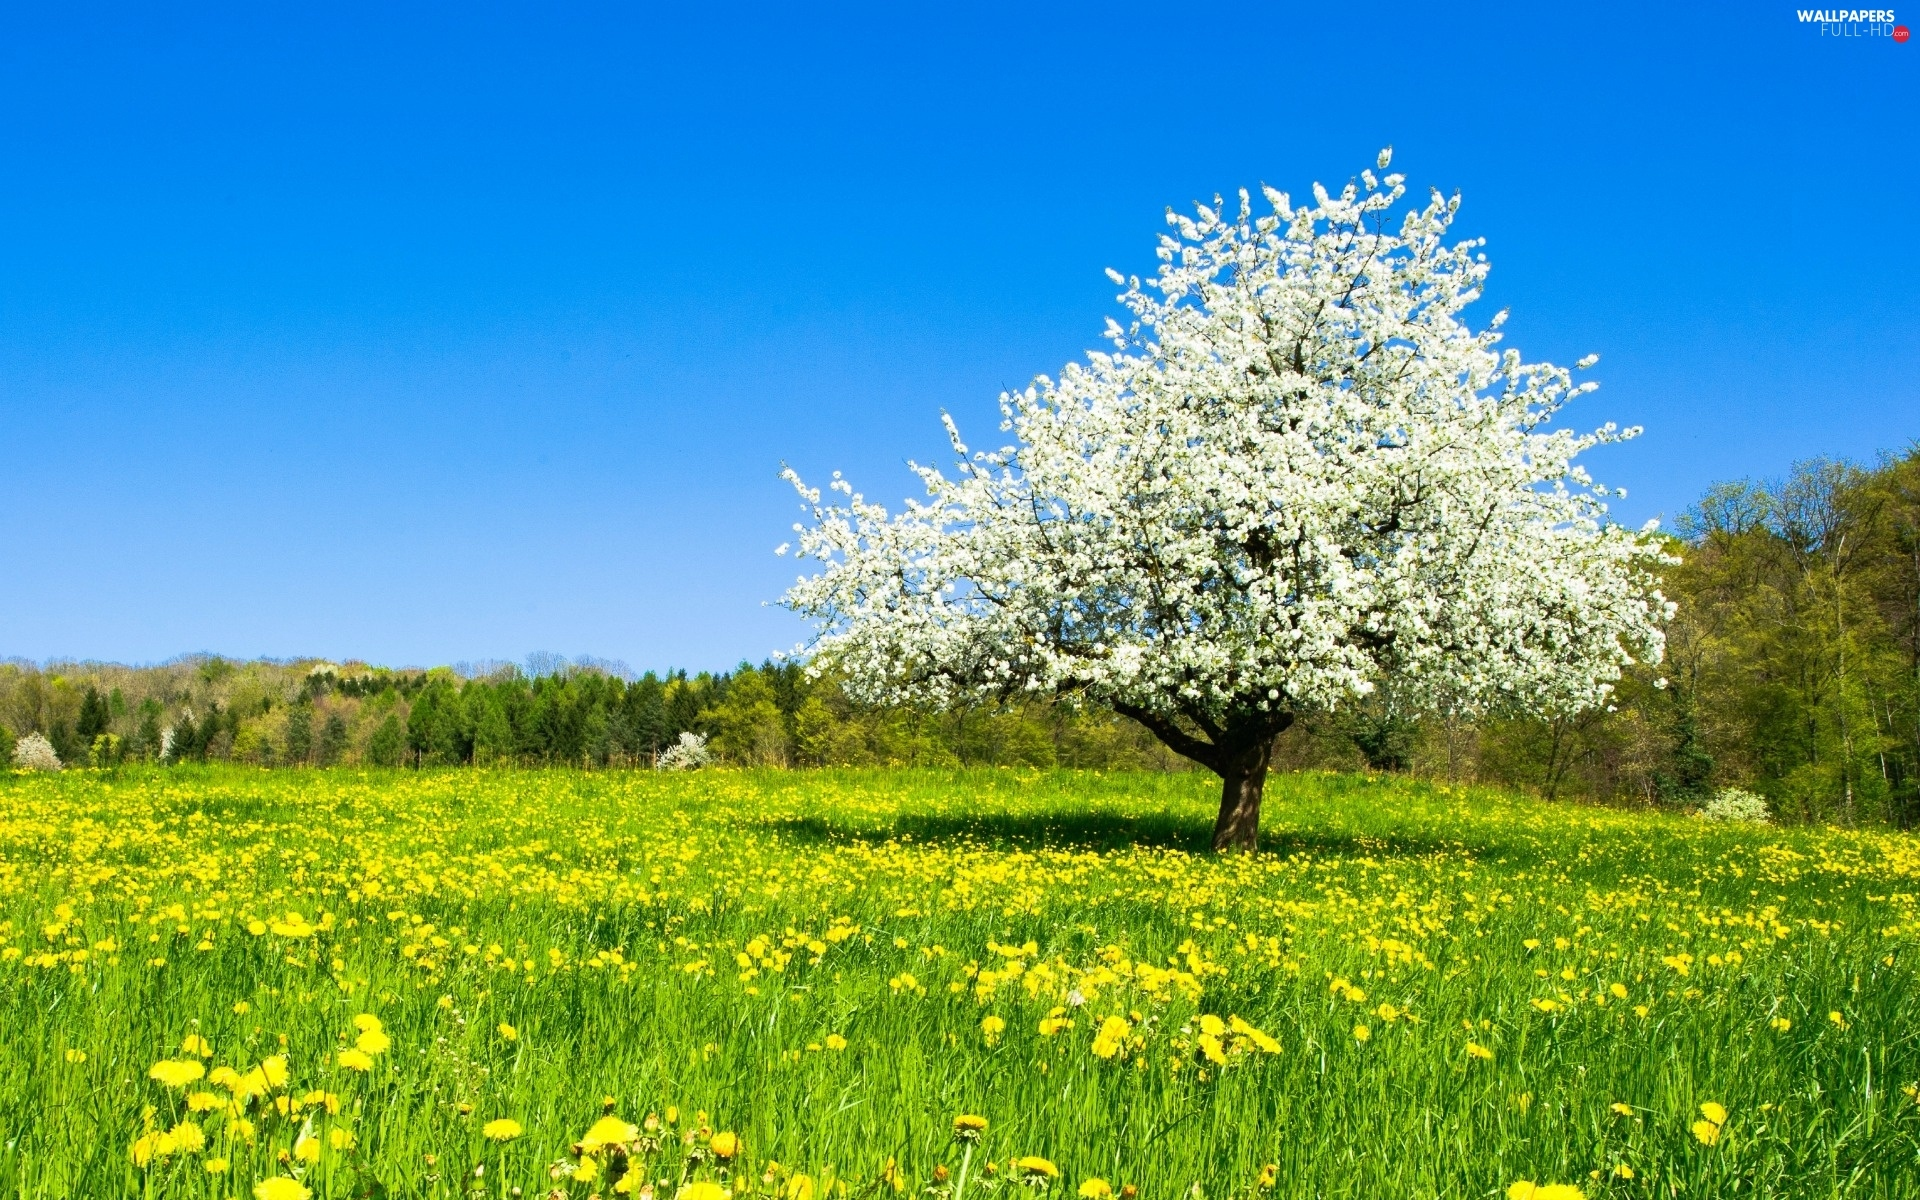 forest, trees, Meadow, Spring, Colourfull Flowers